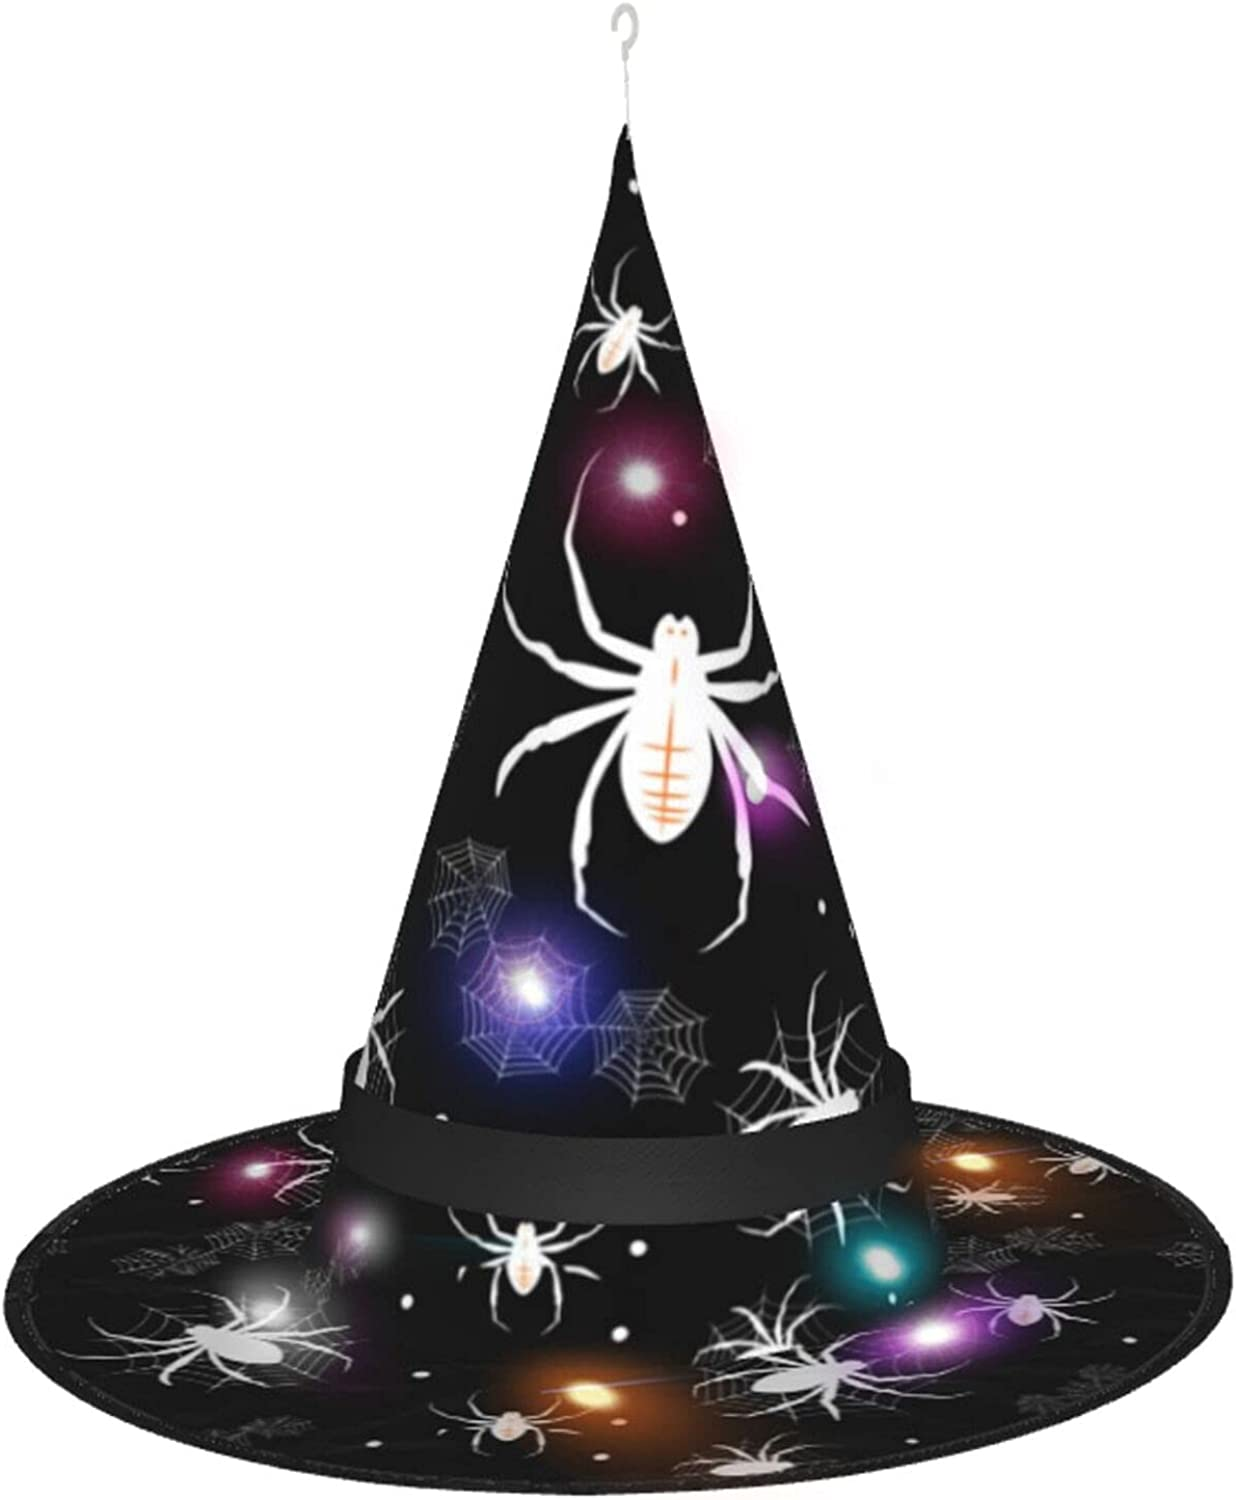 Evil Pumpkin Novelty Halloween Witch Costume Hat Light With Department store Phoenix Mall Acc